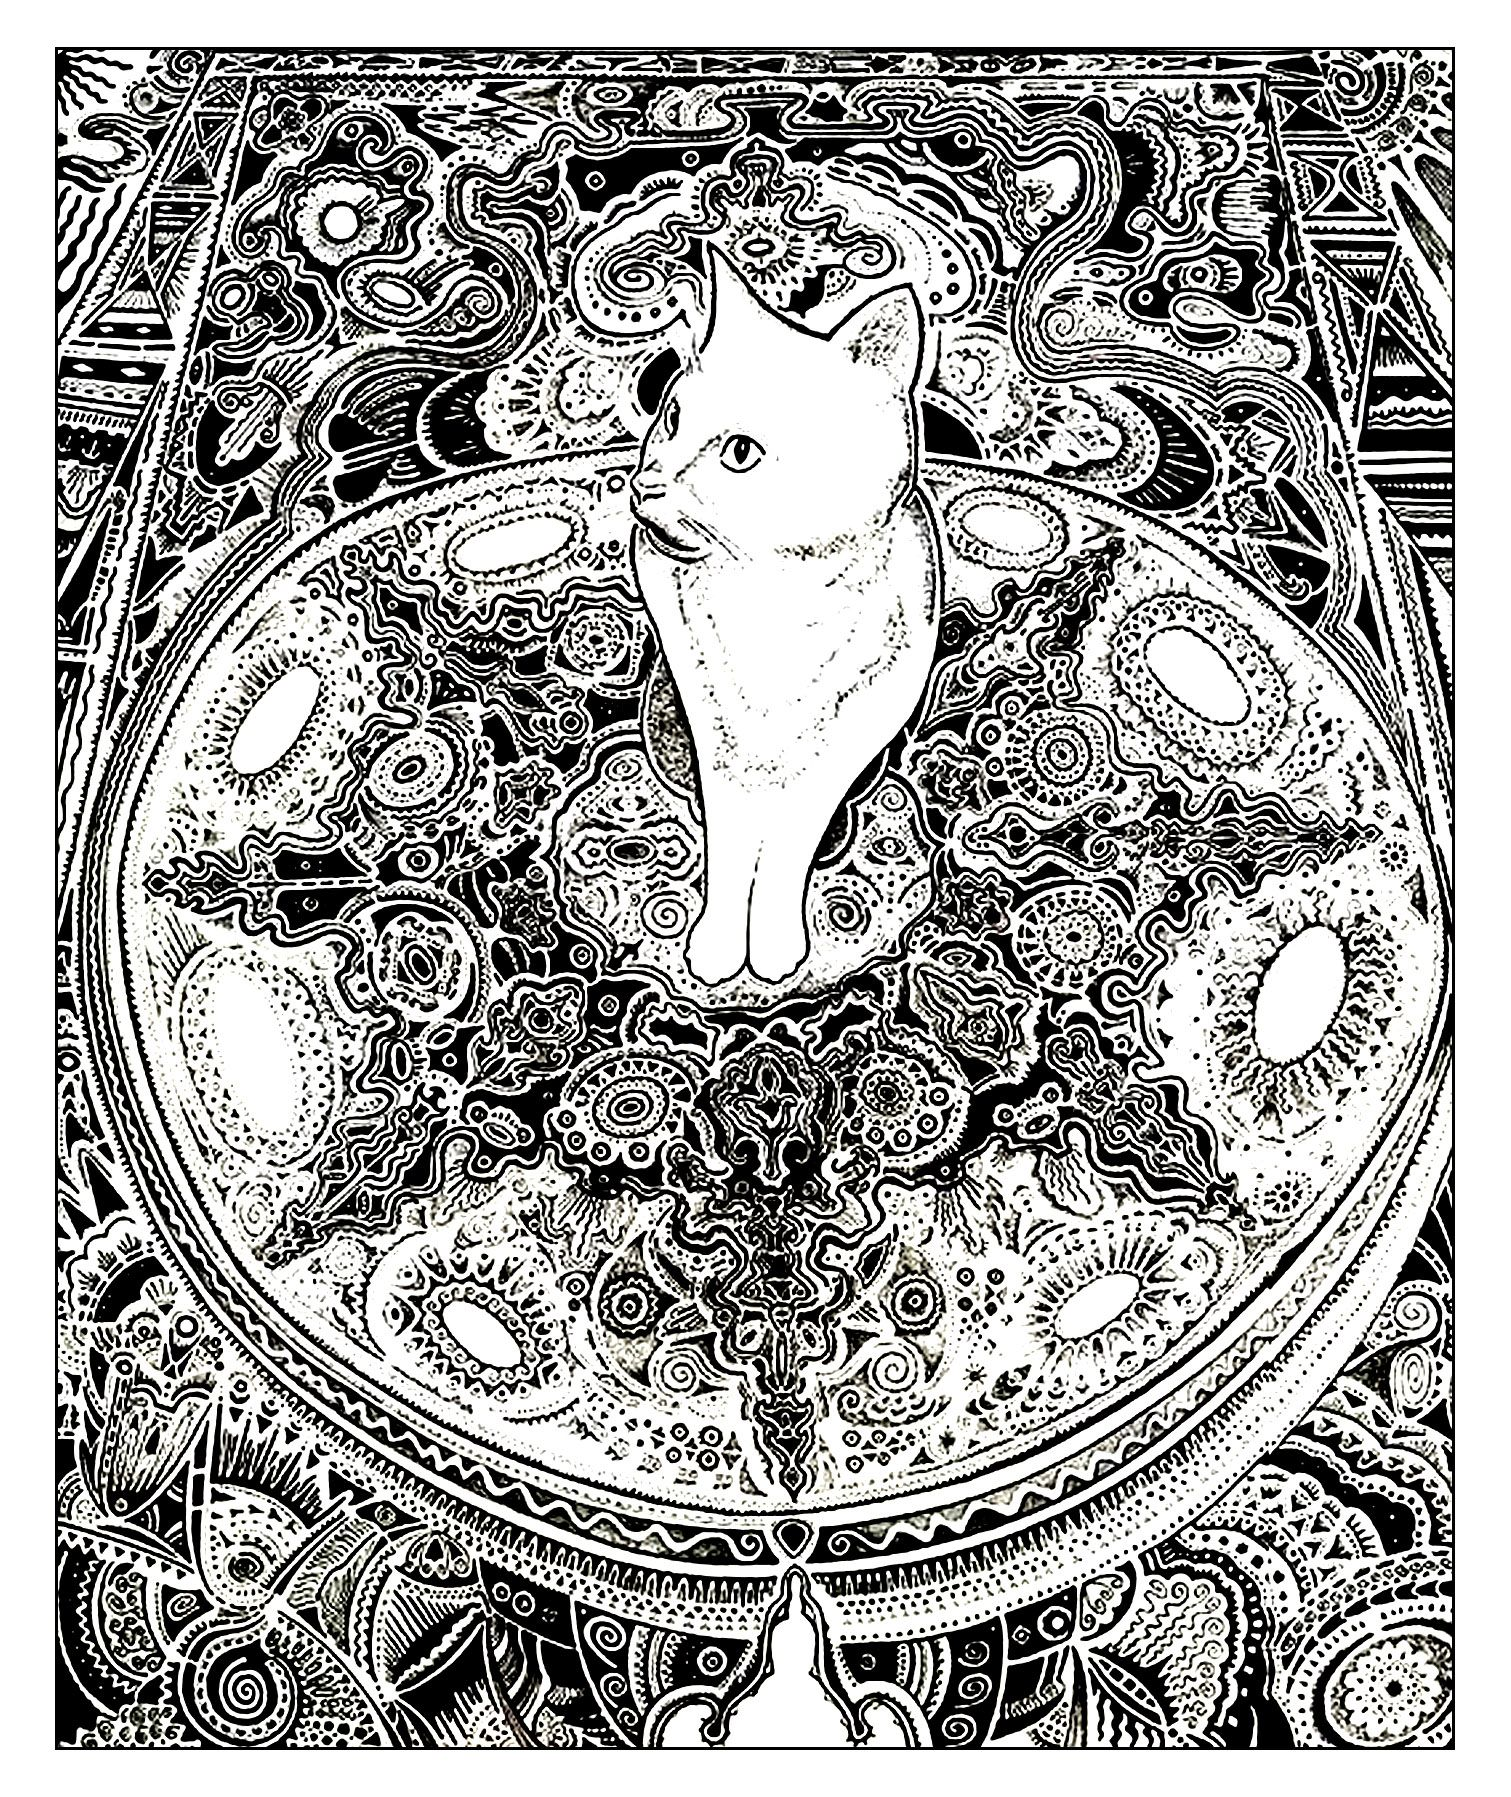 coloring page coloring cat on carpet a cat on a carpet full of